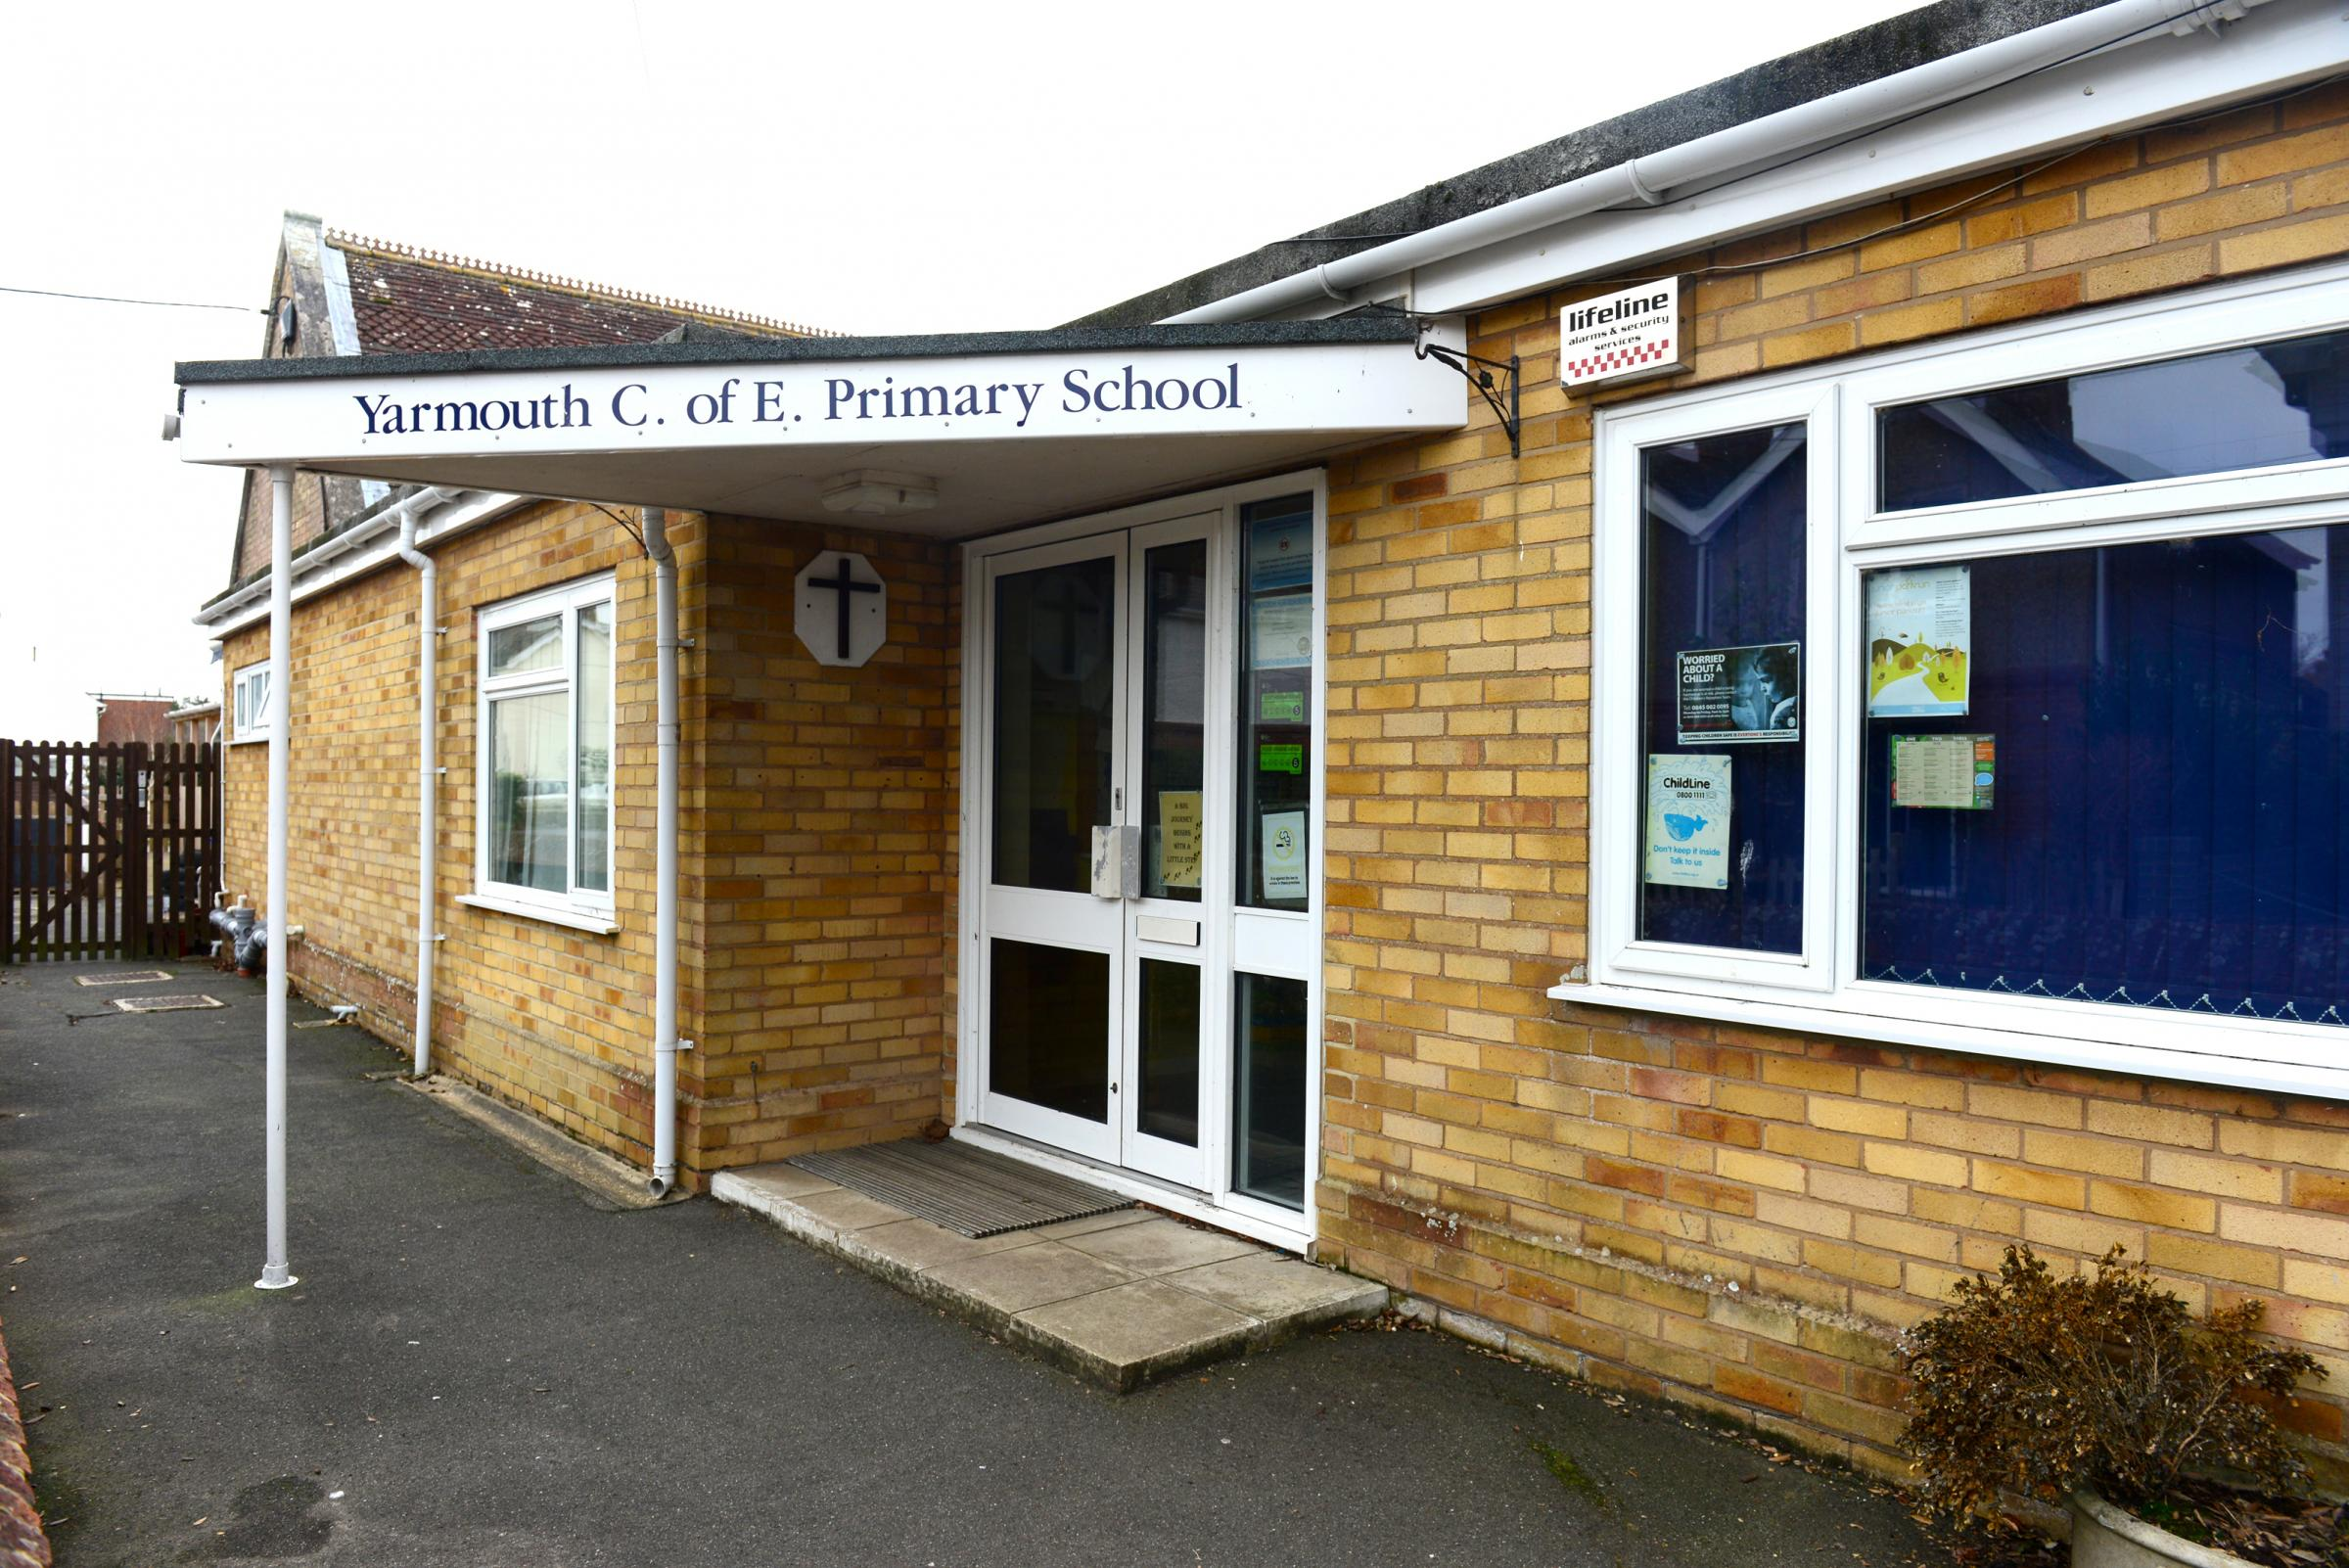 Yarmouth - Yarmouth C of E Primary School.